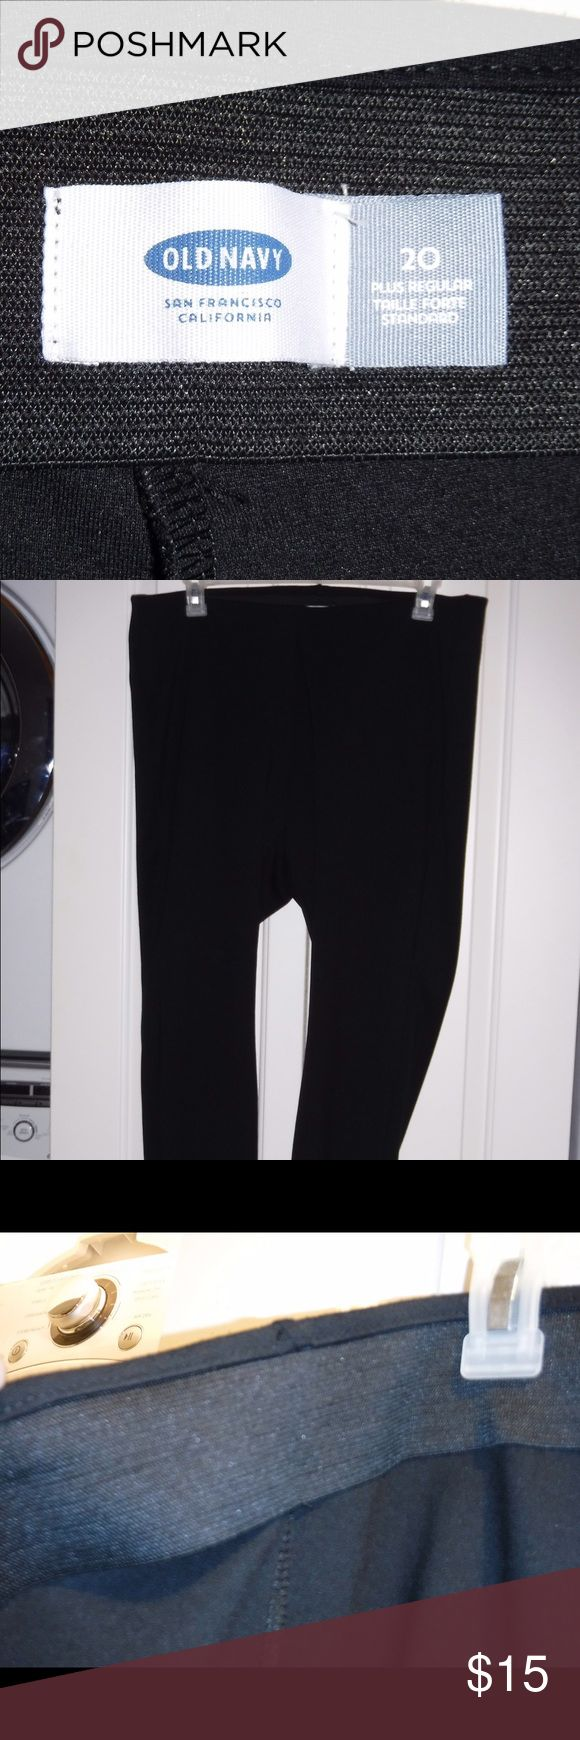 Old Navy Plus Size Thick Leggings Size 20 Plus Black leggings from Old Navy pants. Very comfortable with a thick waistband, no pockets but very thick materials that don't make them see-through. Worn a handful of times. Old Navy Pants Leggings